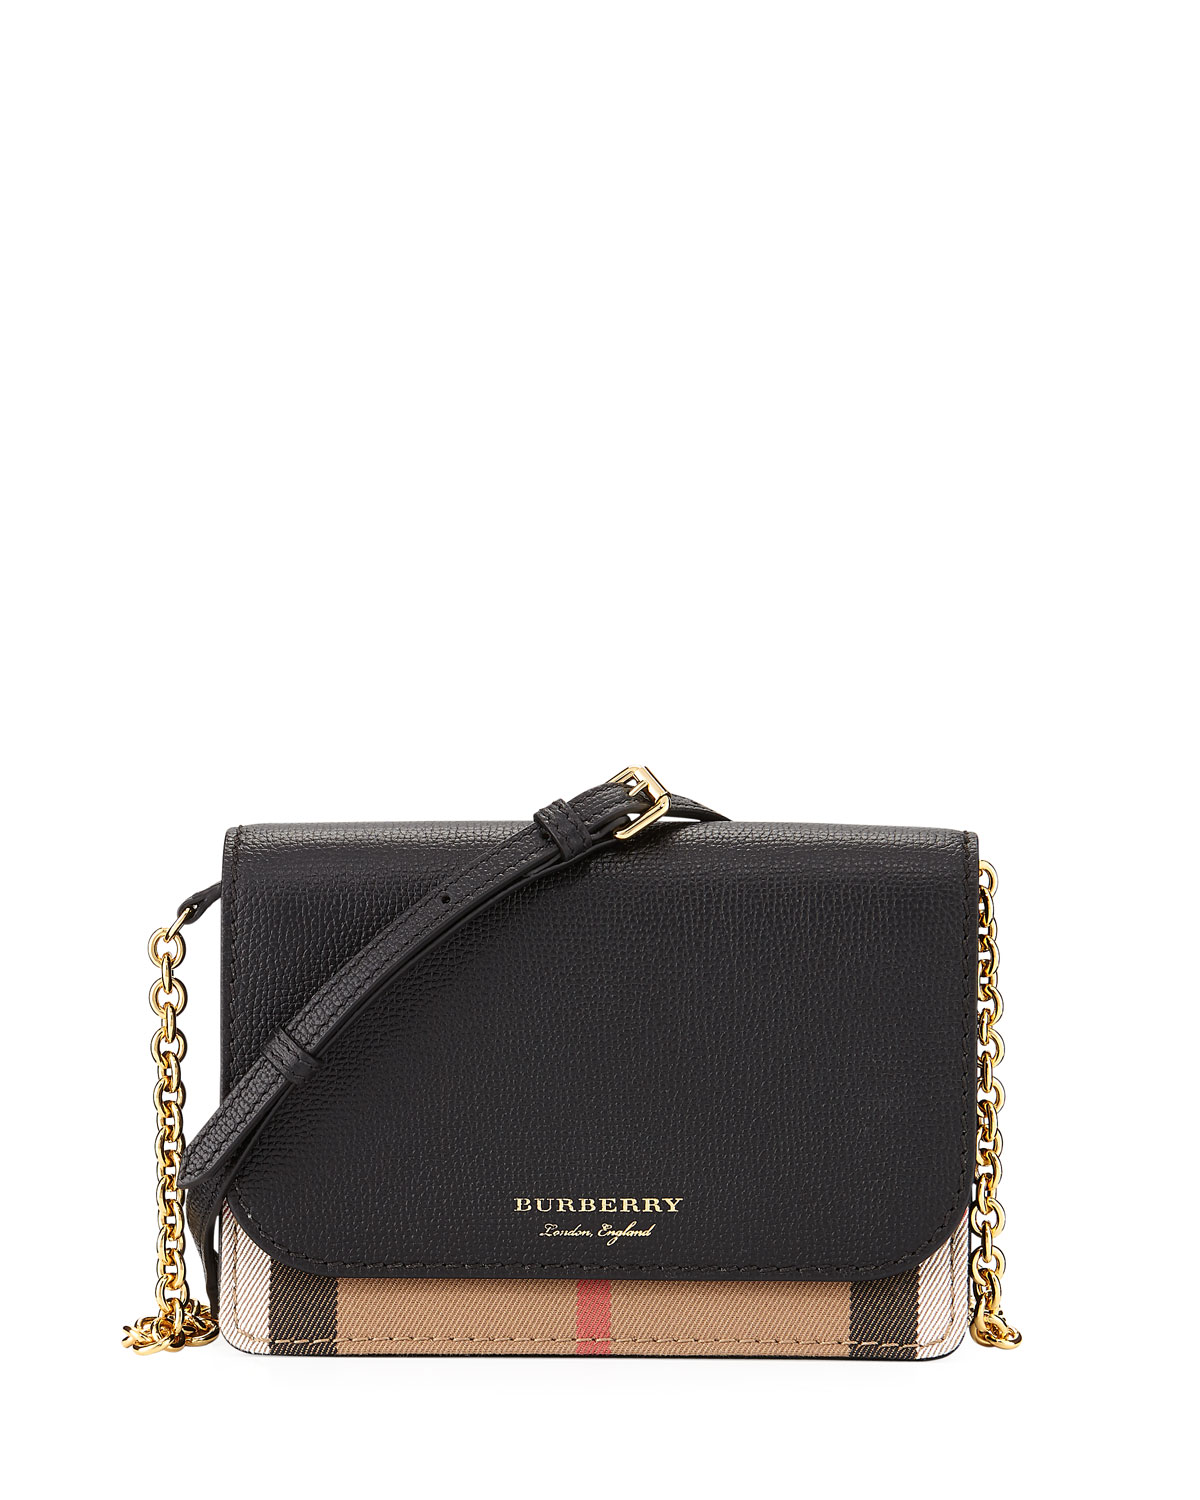 64b500a5e1 Burberry Hampshire Check/Leather Wallet On A Chain, Black | Neiman ...